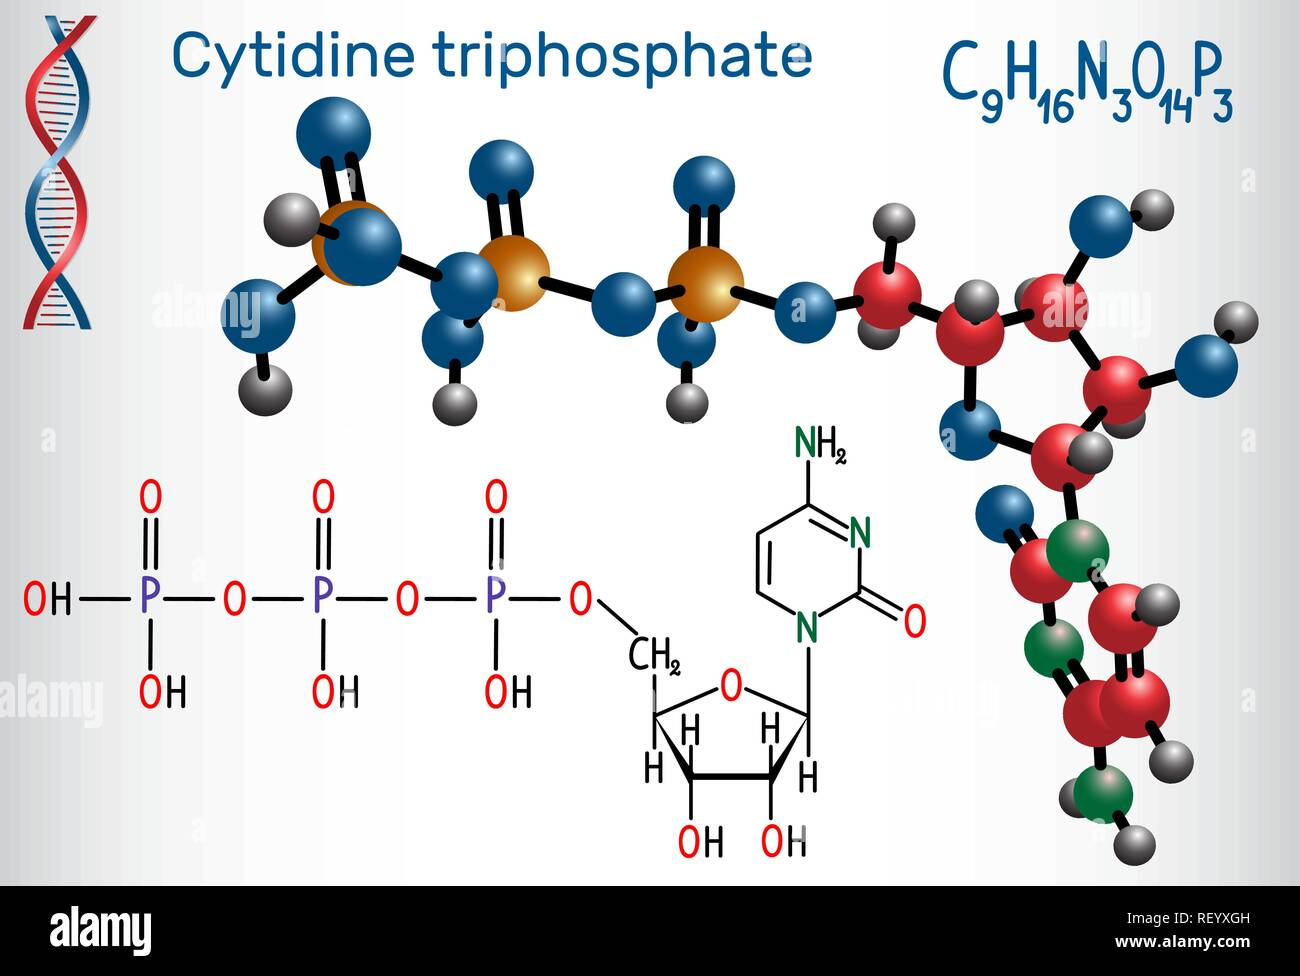 Cytidine triphosphate (CTP) molecule, it is pyrimidine nucleoside molecule, is a substrate in the synthesis of RNA. Structural chemical formula and mo Stock Vector